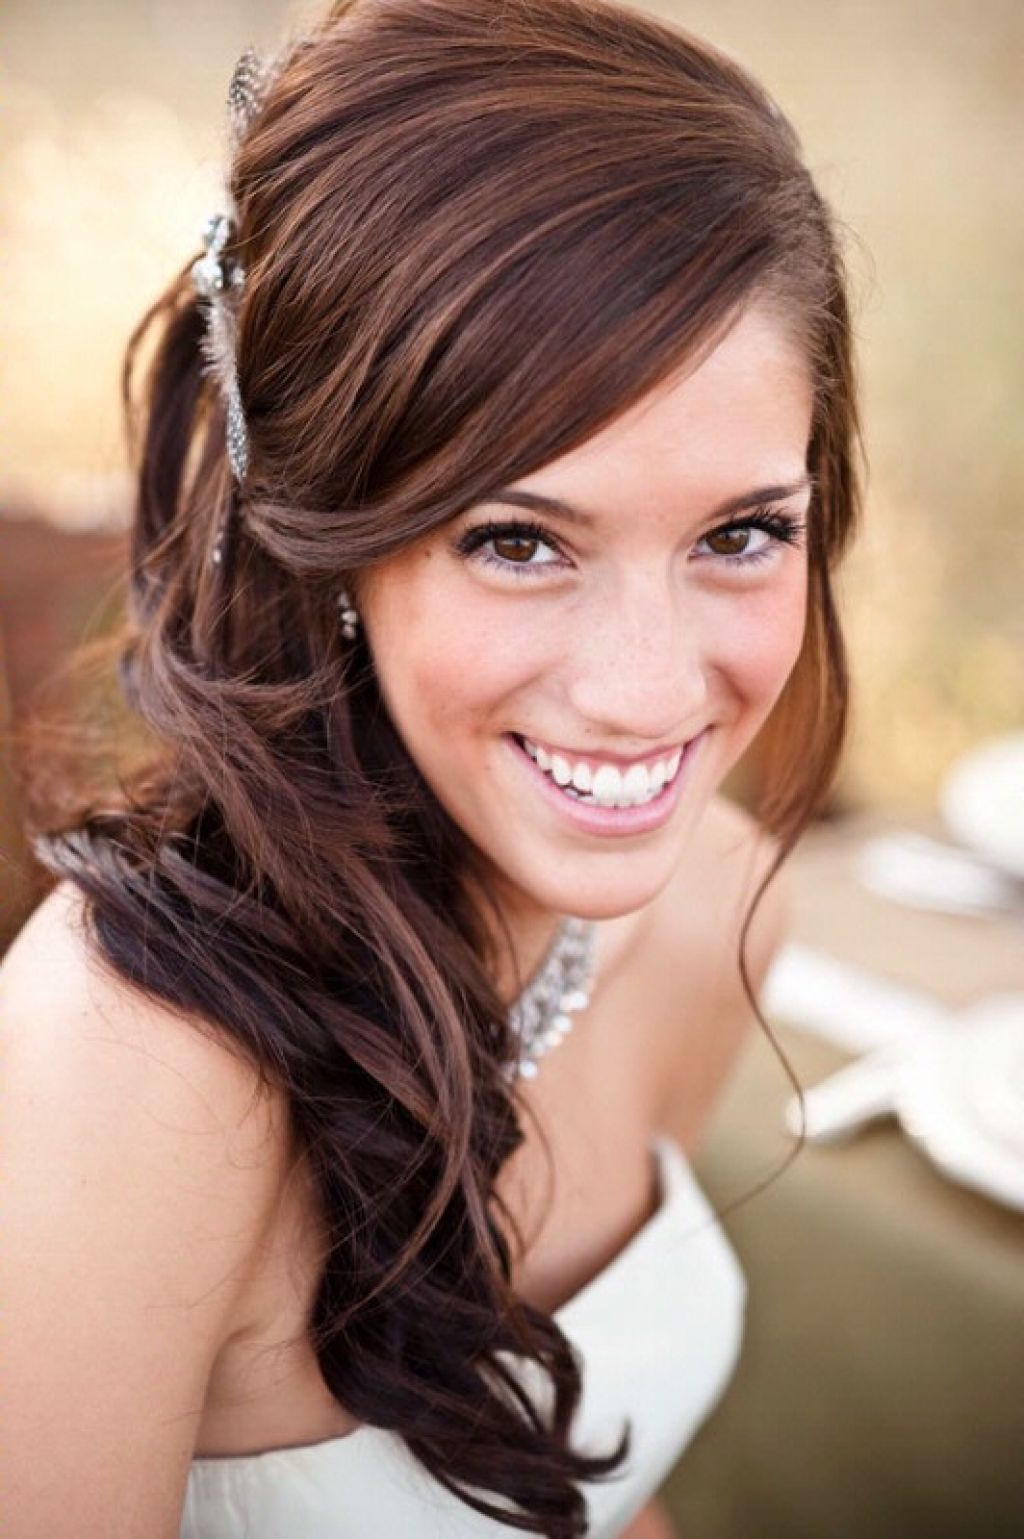 wedding hairstyle side hair | hairstyle | pinterest | wedding